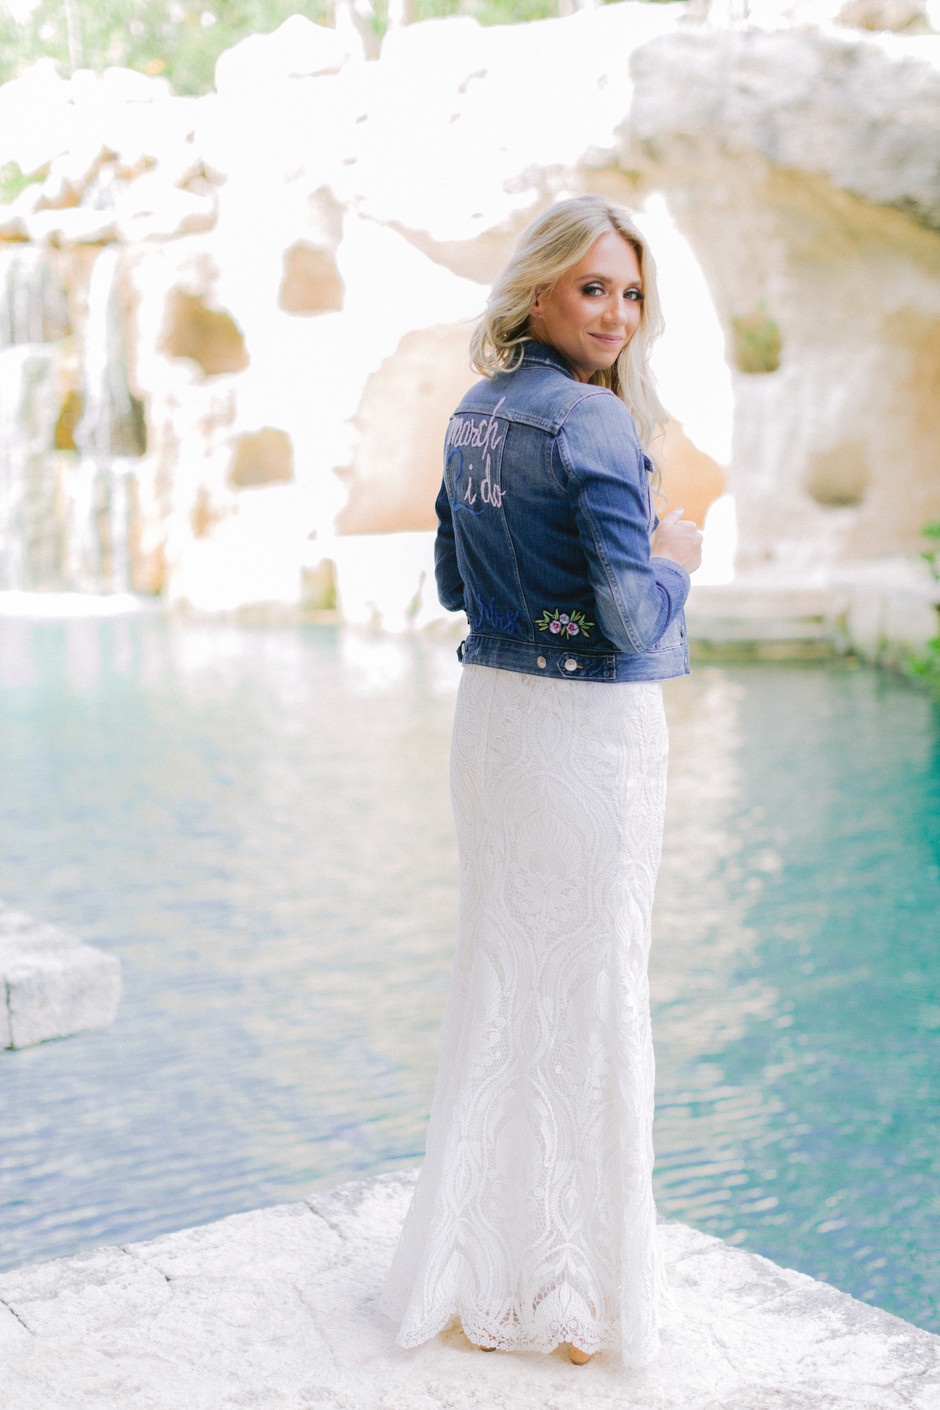 10 Bridal Portraits That You Must Try